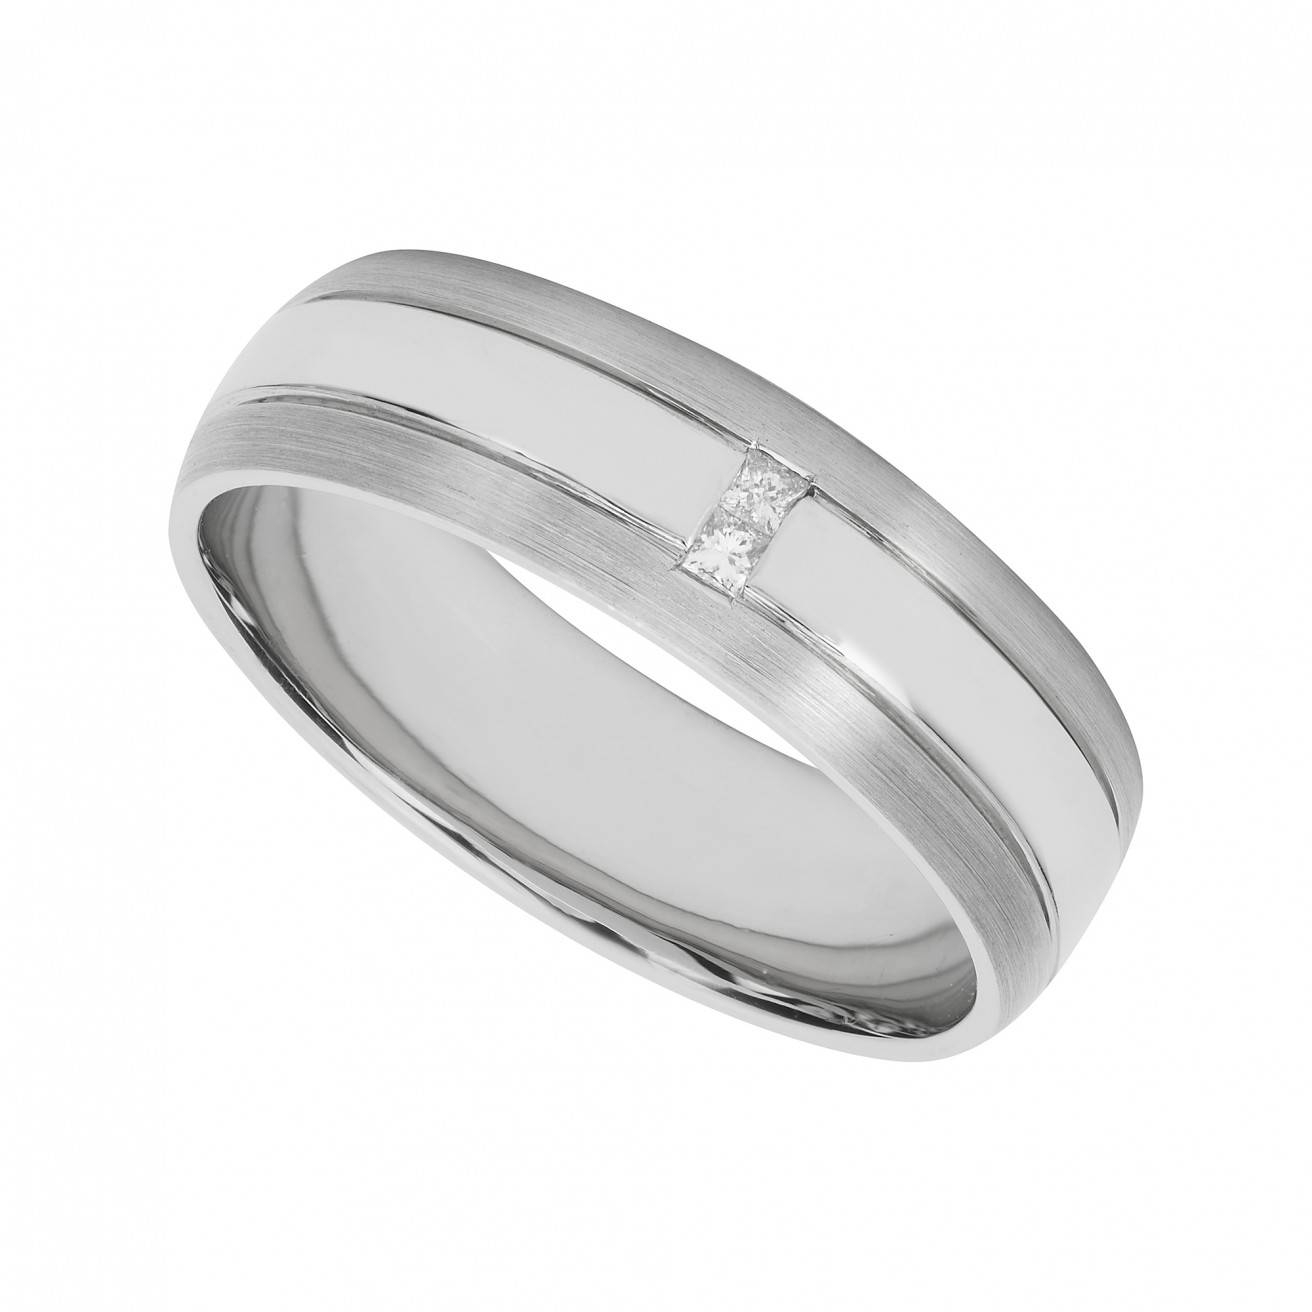 Palladium Wedding Rings Within Mens Wedding Rings Palladium (Gallery 7 of 15)